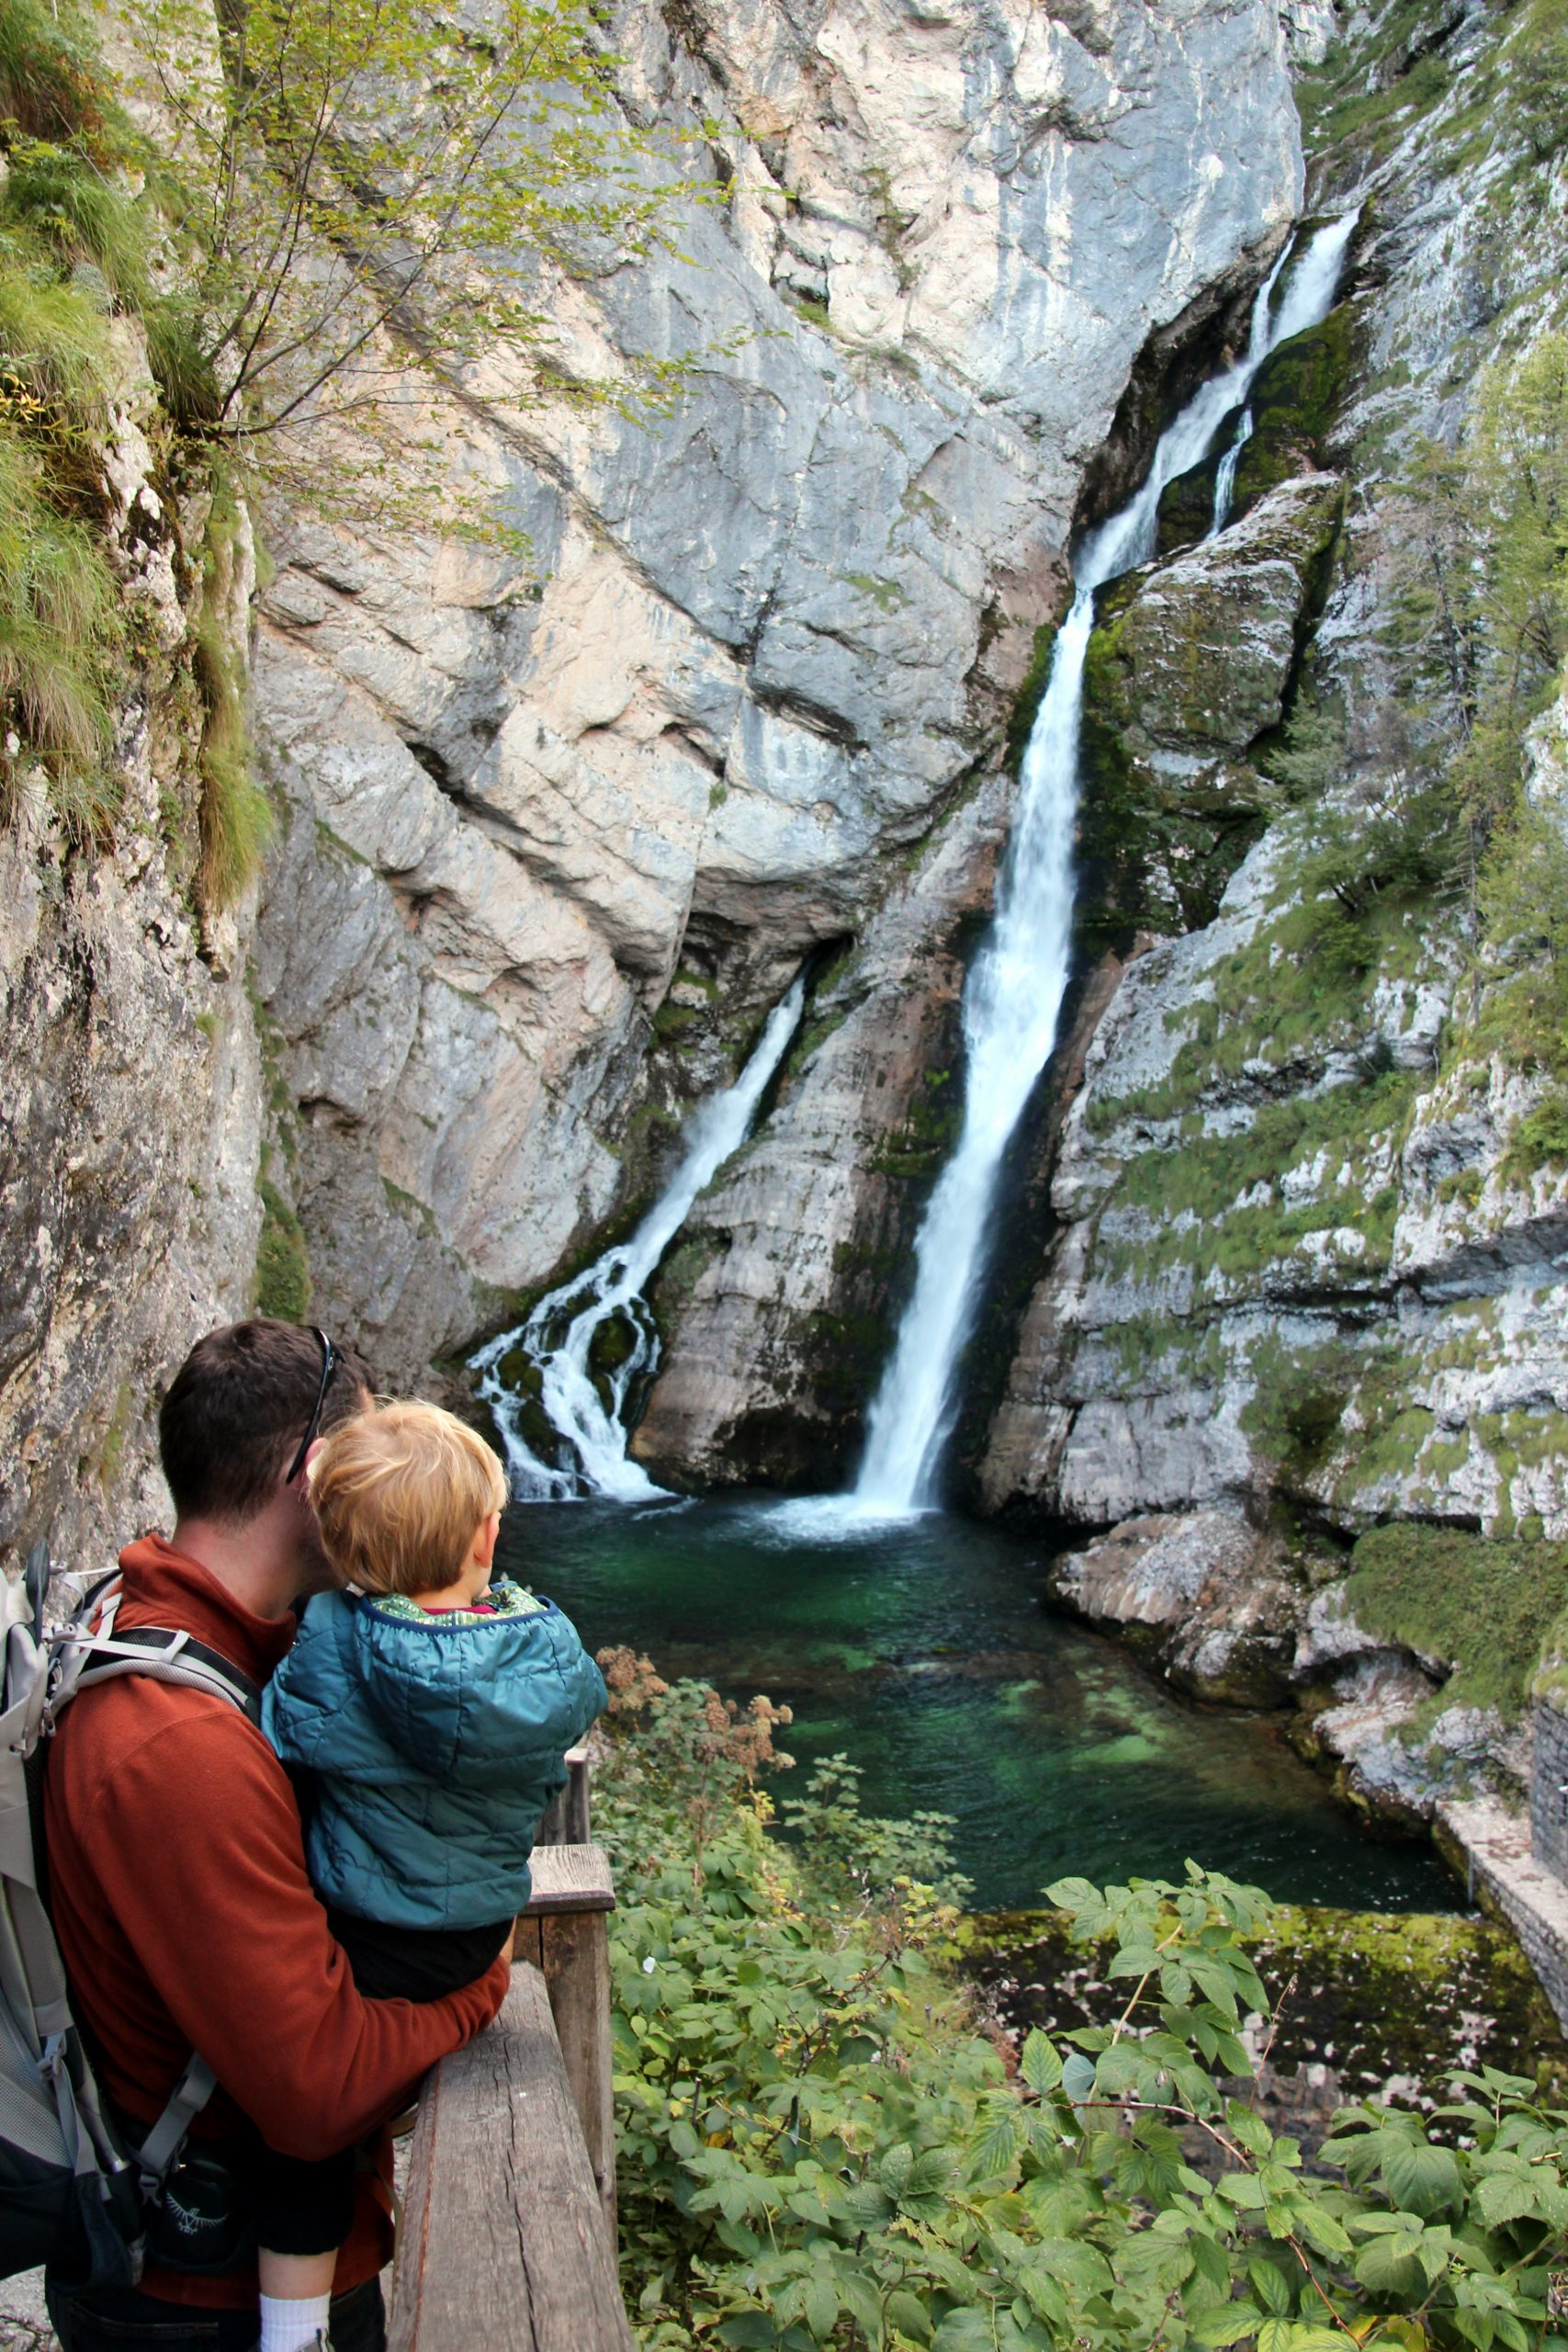 Father and Son taking in A View of Slap Savica waterfall in Slovenia